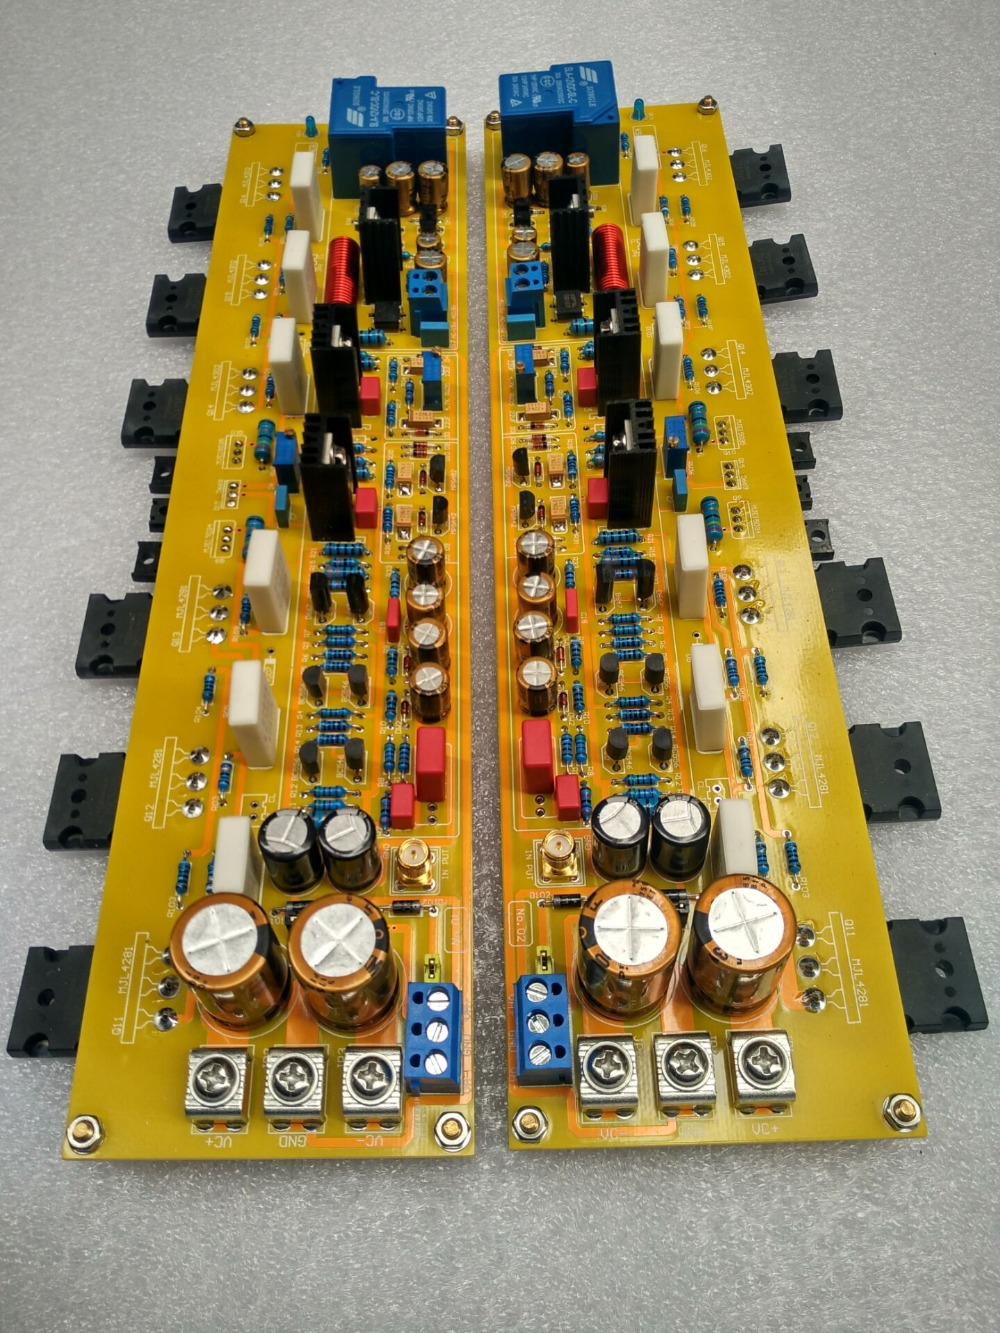 small resolution of krell ksa50 amplifier circuit 50w 2sc5200 2sa1943 2sc2073 2sa940 2sc5171 2sa1930 tube class a pure after class amplifier board in amplifier from consumer